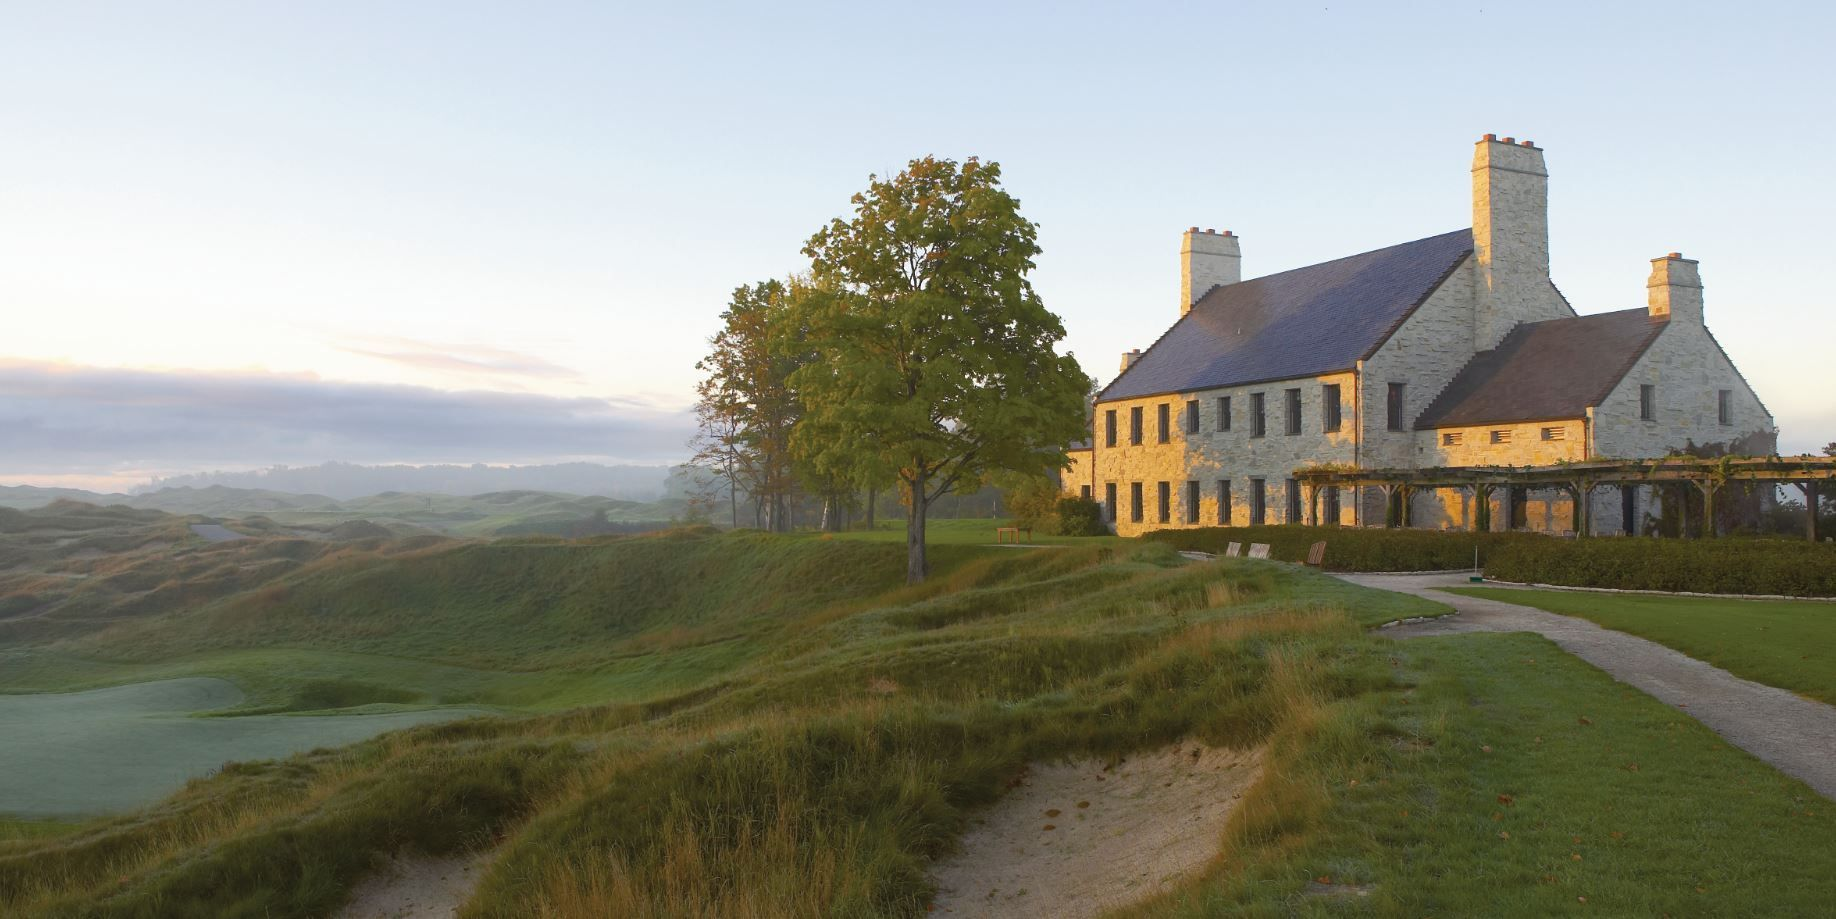 Destination Kohler Offers 5-Star Luxury And Gracious Living In Wisconsin